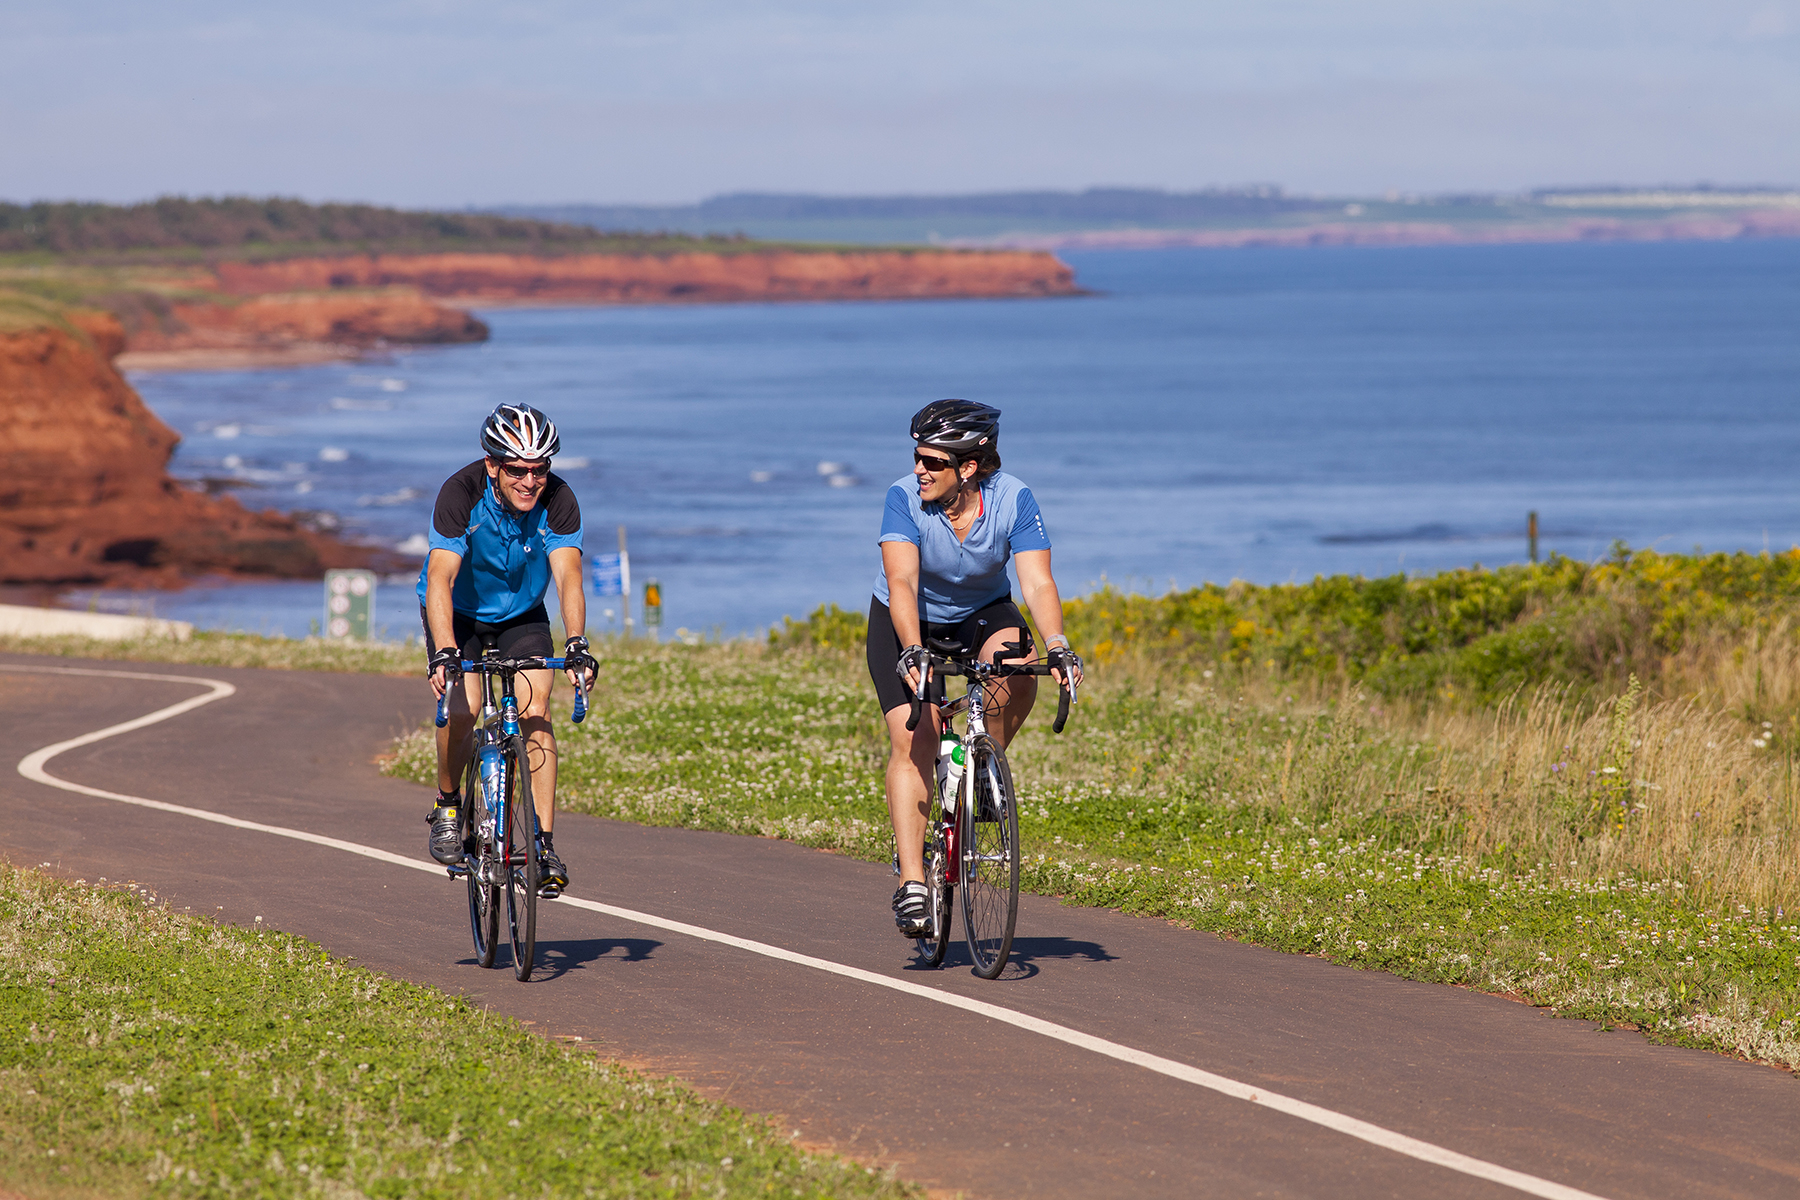 Cycling is a great way to enjoy the gentle island of PEI and Prince Edward Island National Park. PHOTO BY JOHN SYLVESTER/PARKS CANADA